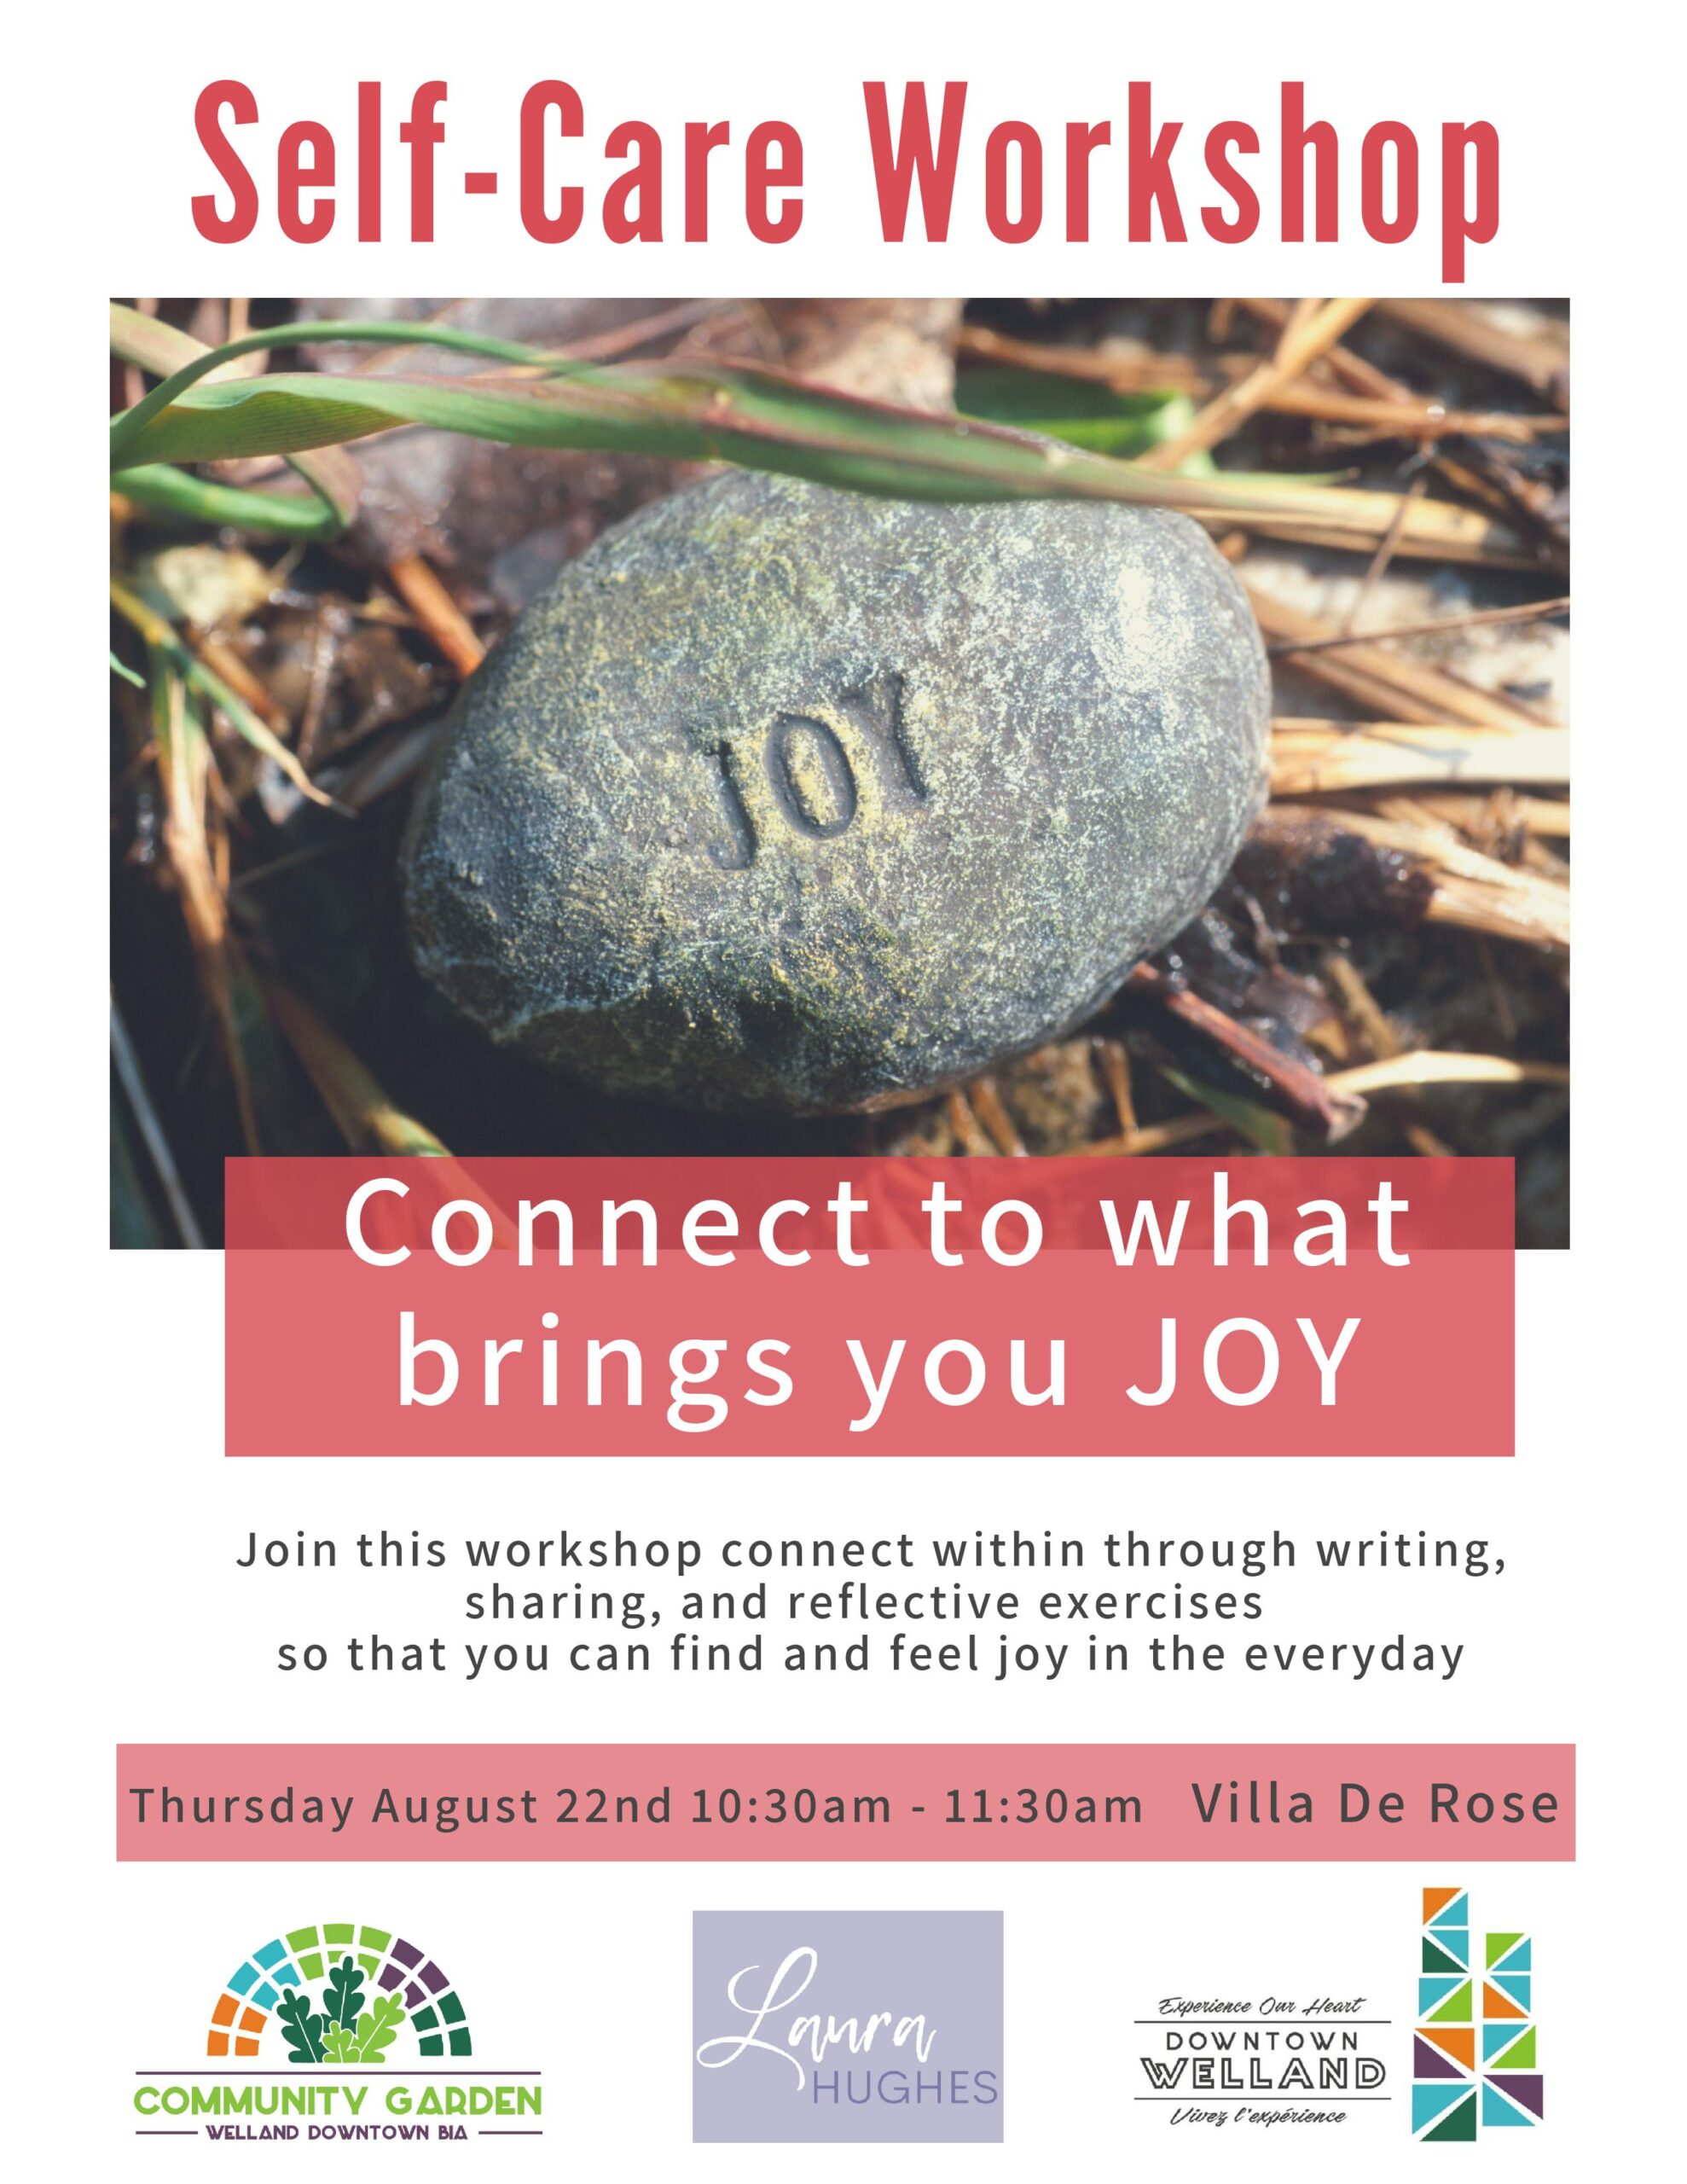 Welland Downtown BIA Seniors Self-Care Workshop